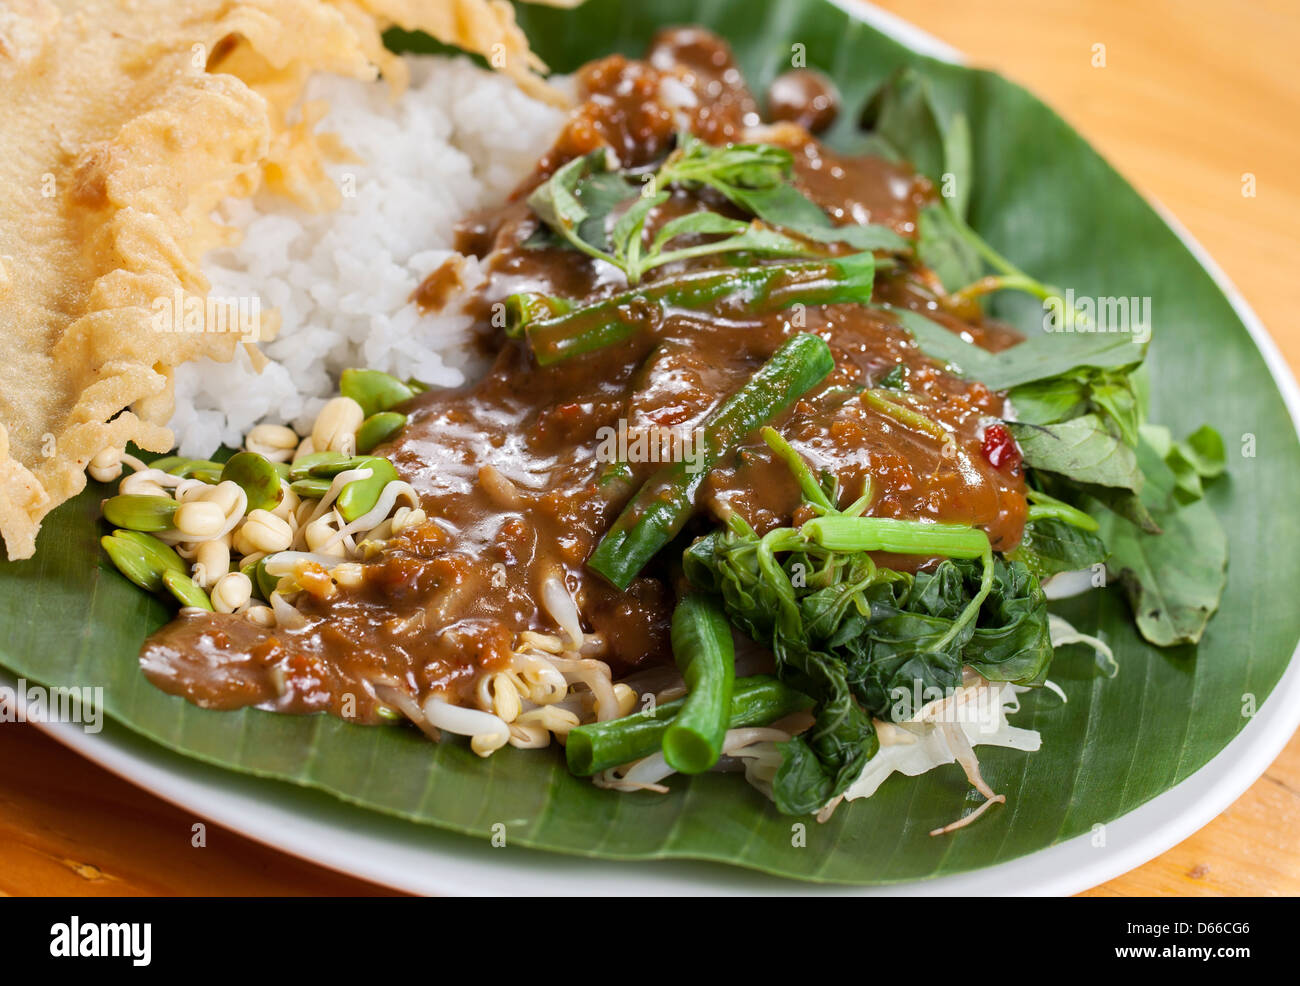 Nasi pecel is a Javanese rice dish served with mix vegetables and peanut sauce - Stock Image